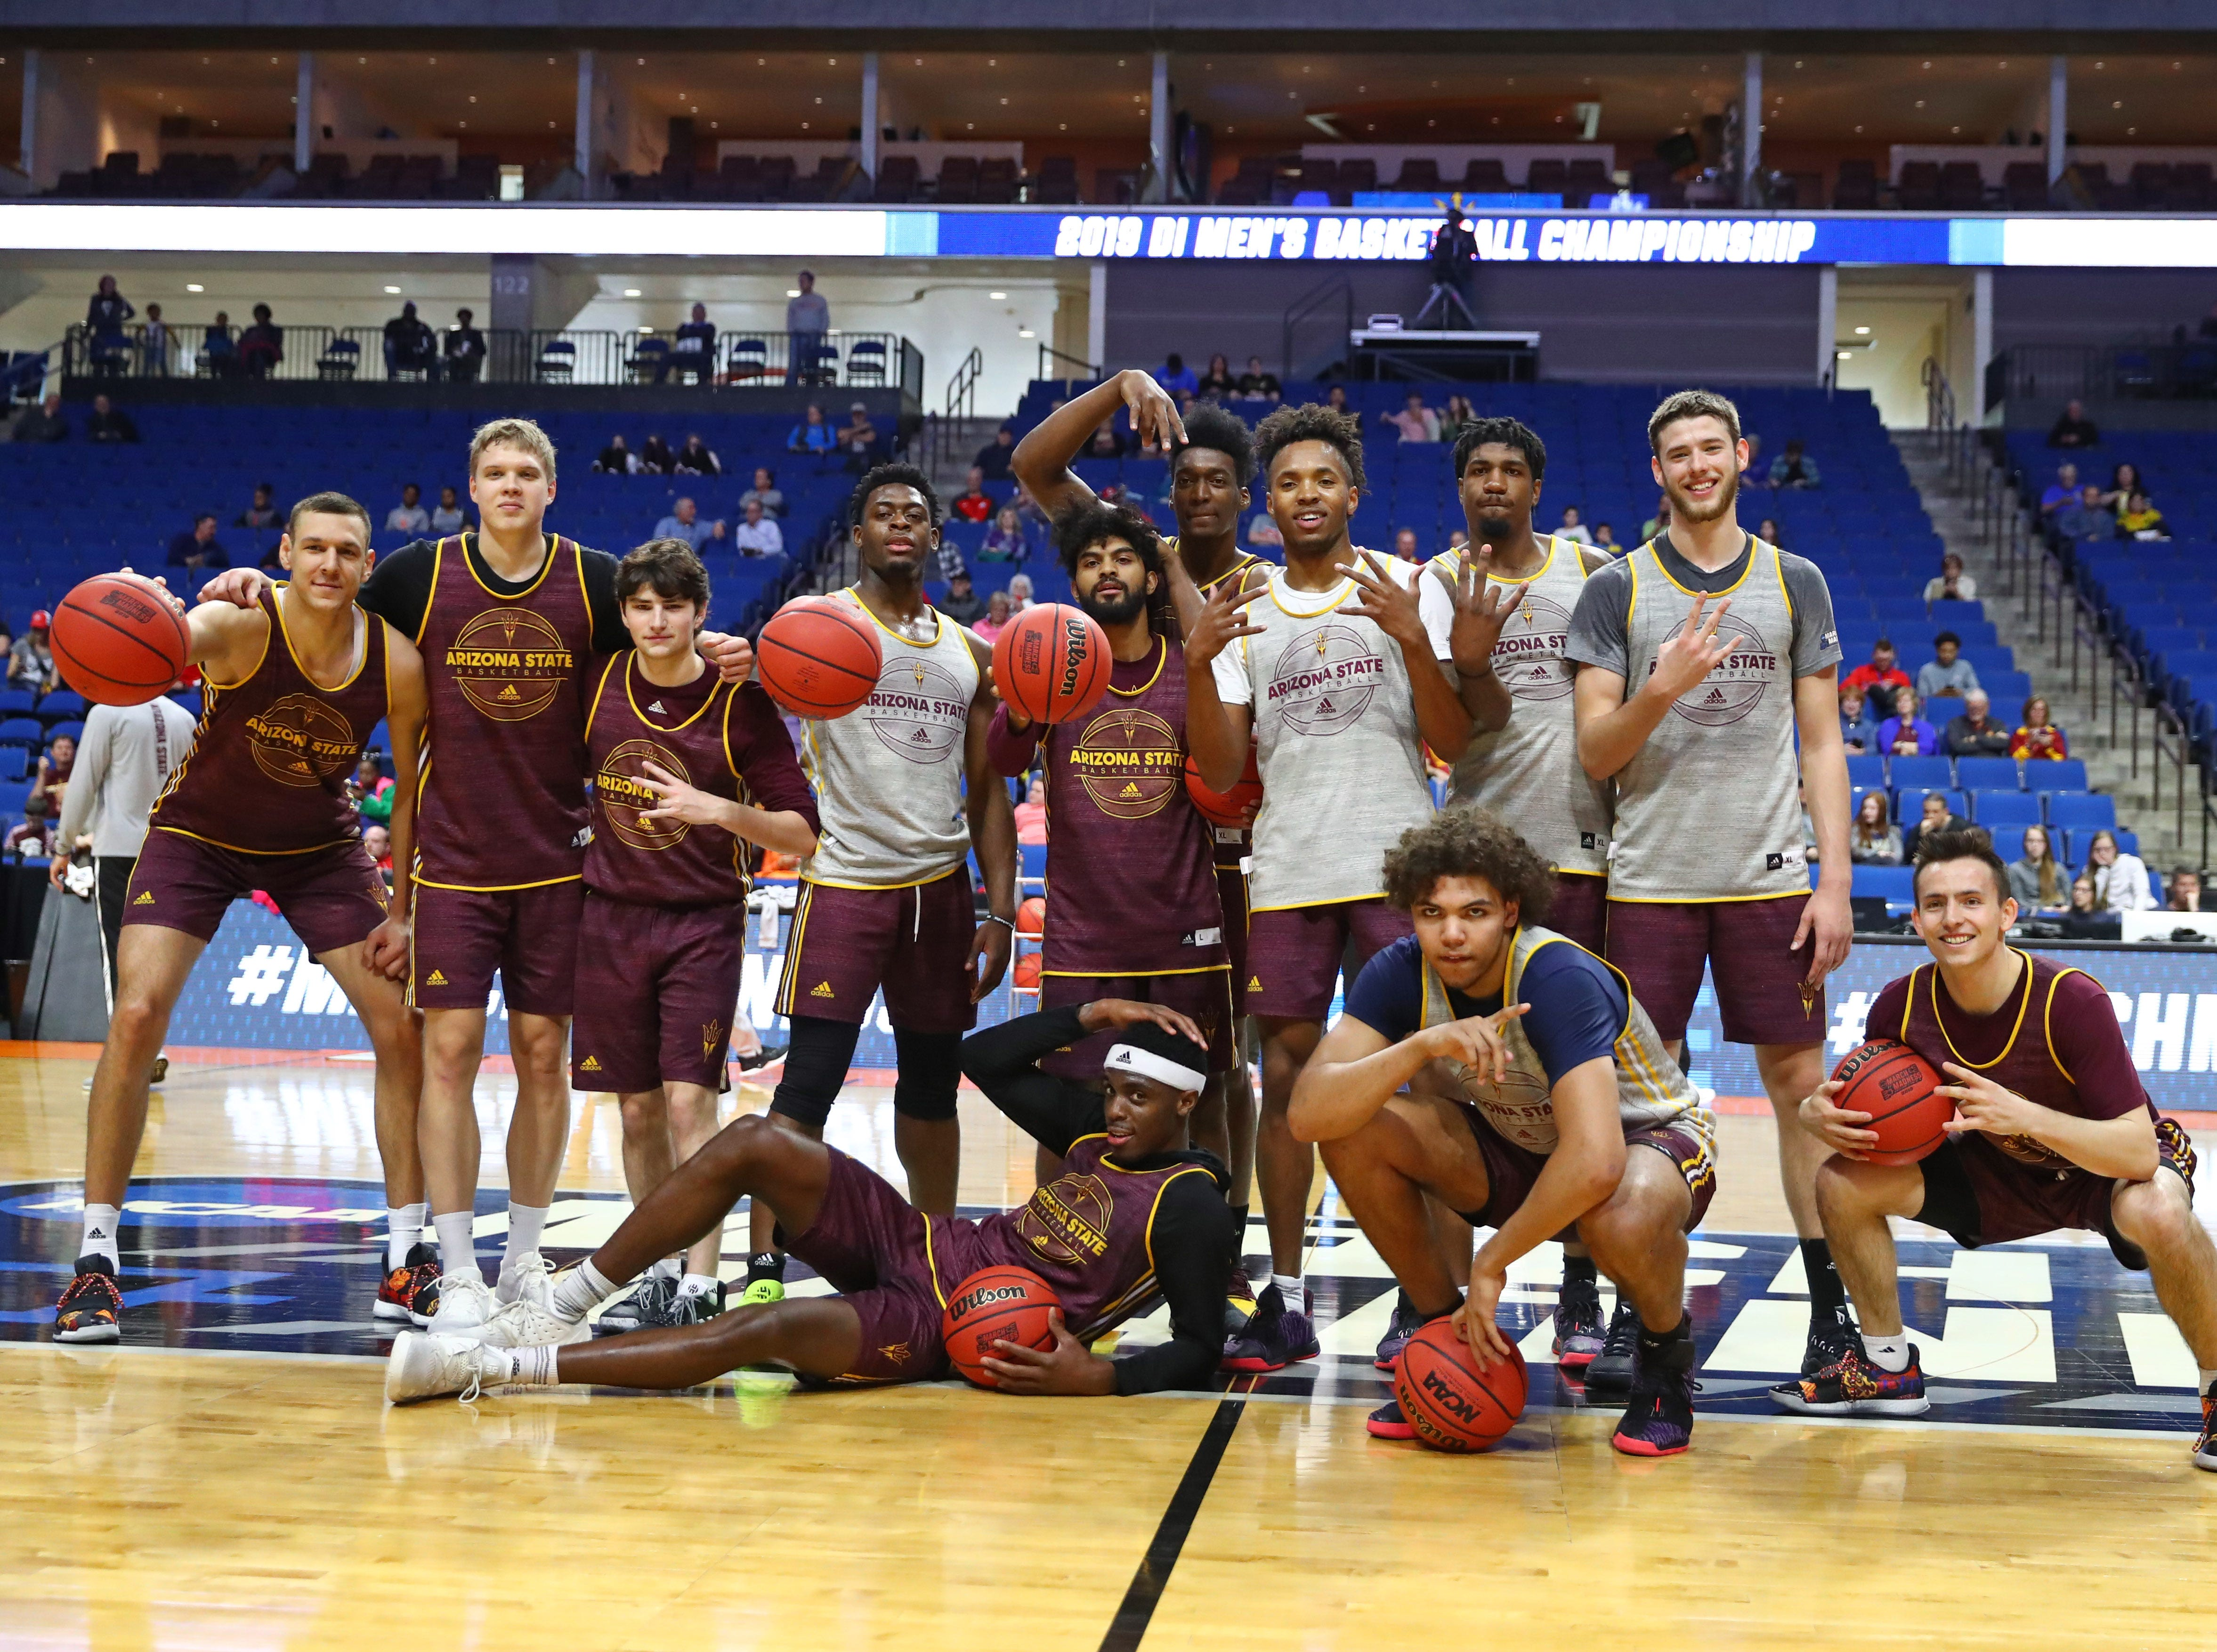 Mar 21, 2019; Tulsa, OK, USA; Arizona State Sun Devils players pose for a team photo during practice before the first round of the 2019 NCAA Tournament at BOK Center. Mandatory Credit: Mark J. Rebilas-USA TODAY Sports